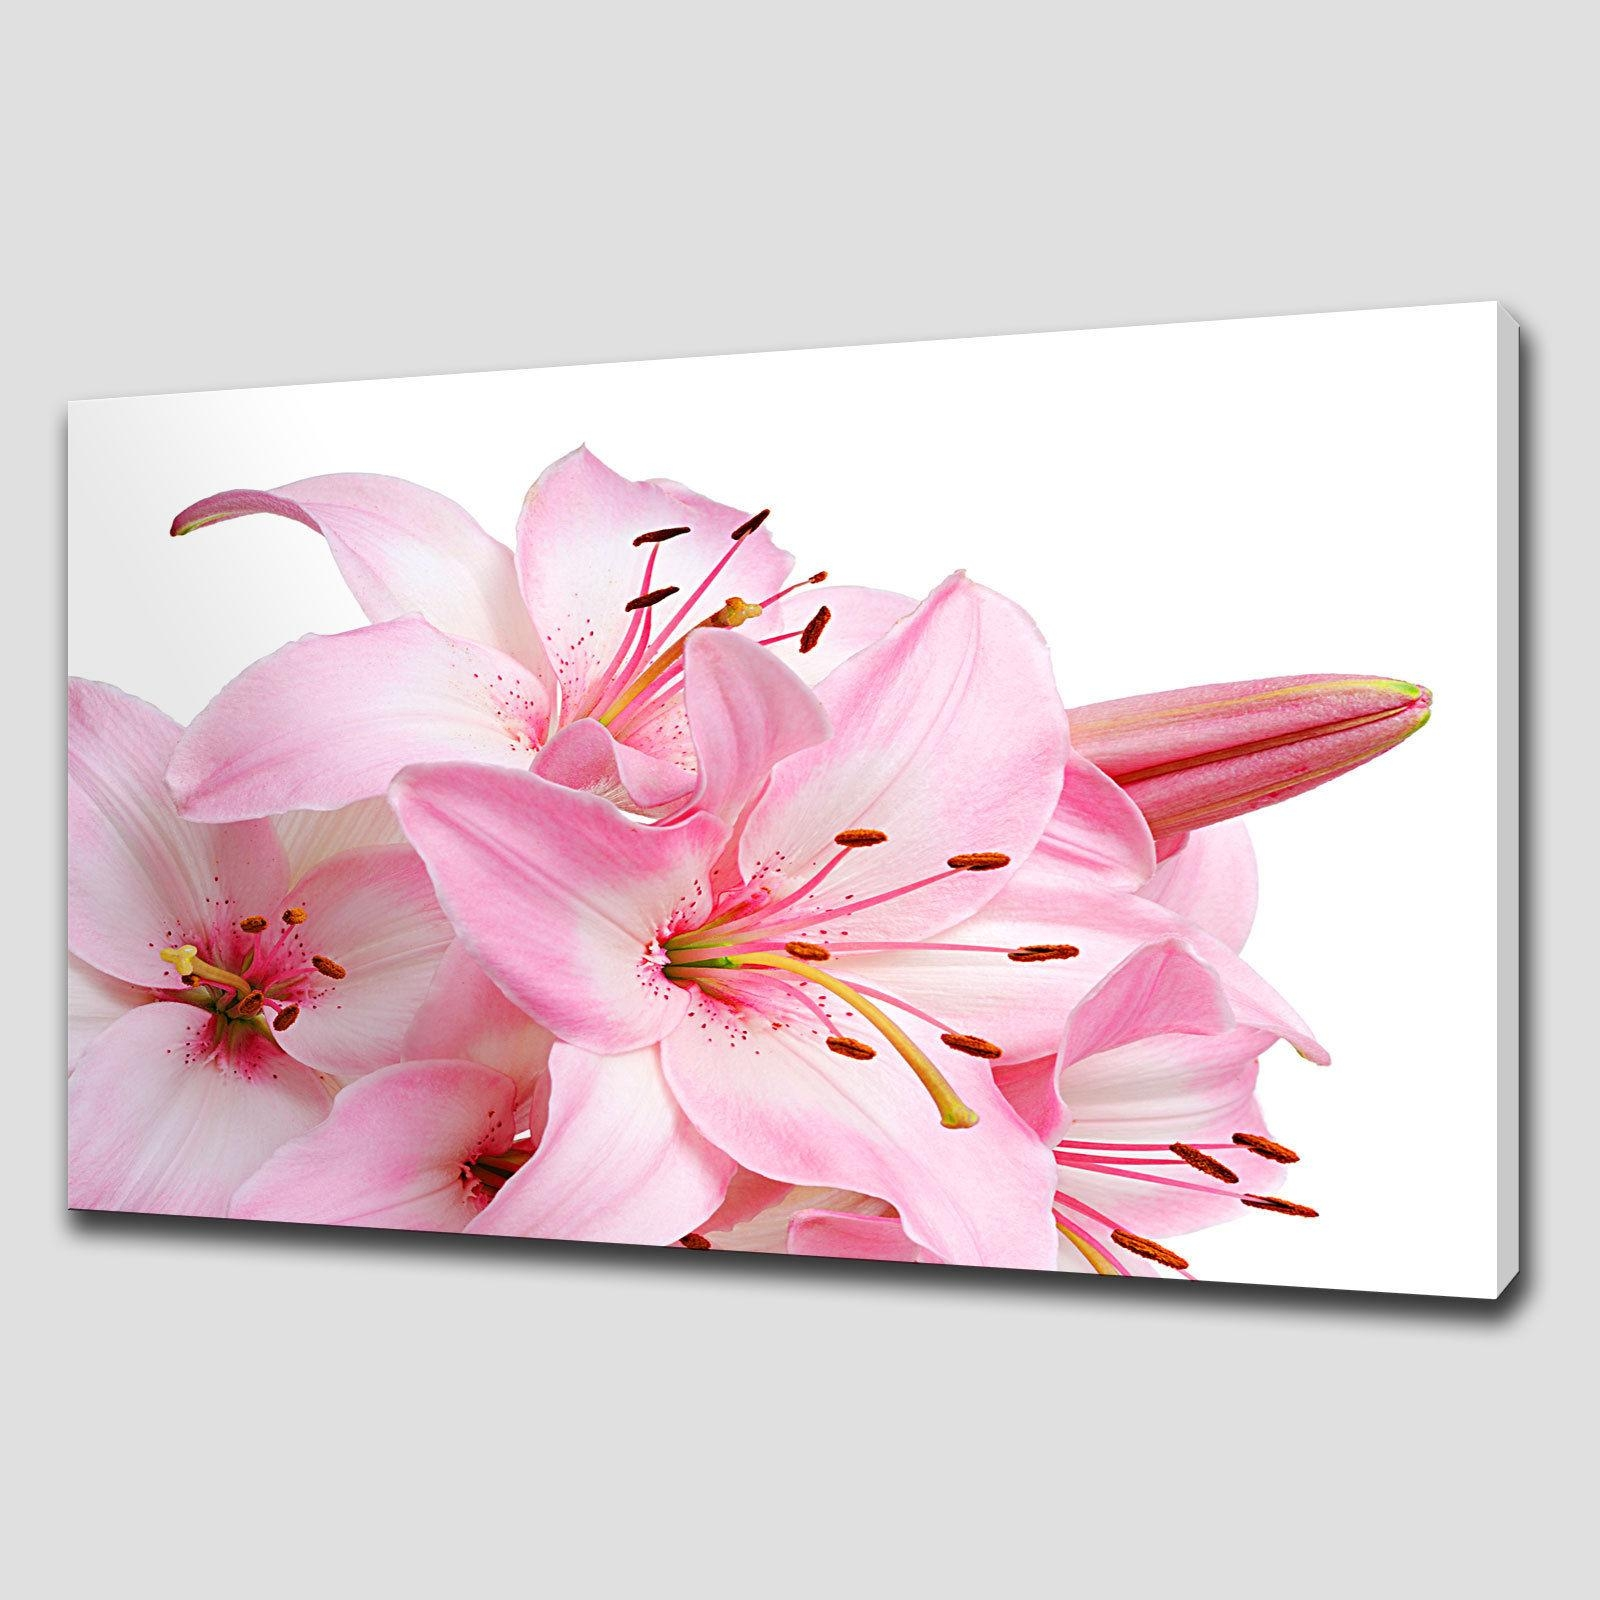 Wall Art Designs: Canvas Floral Wall Art Flowers Paintings Large Inside Pink And White Wall Art (Image 17 of 20)